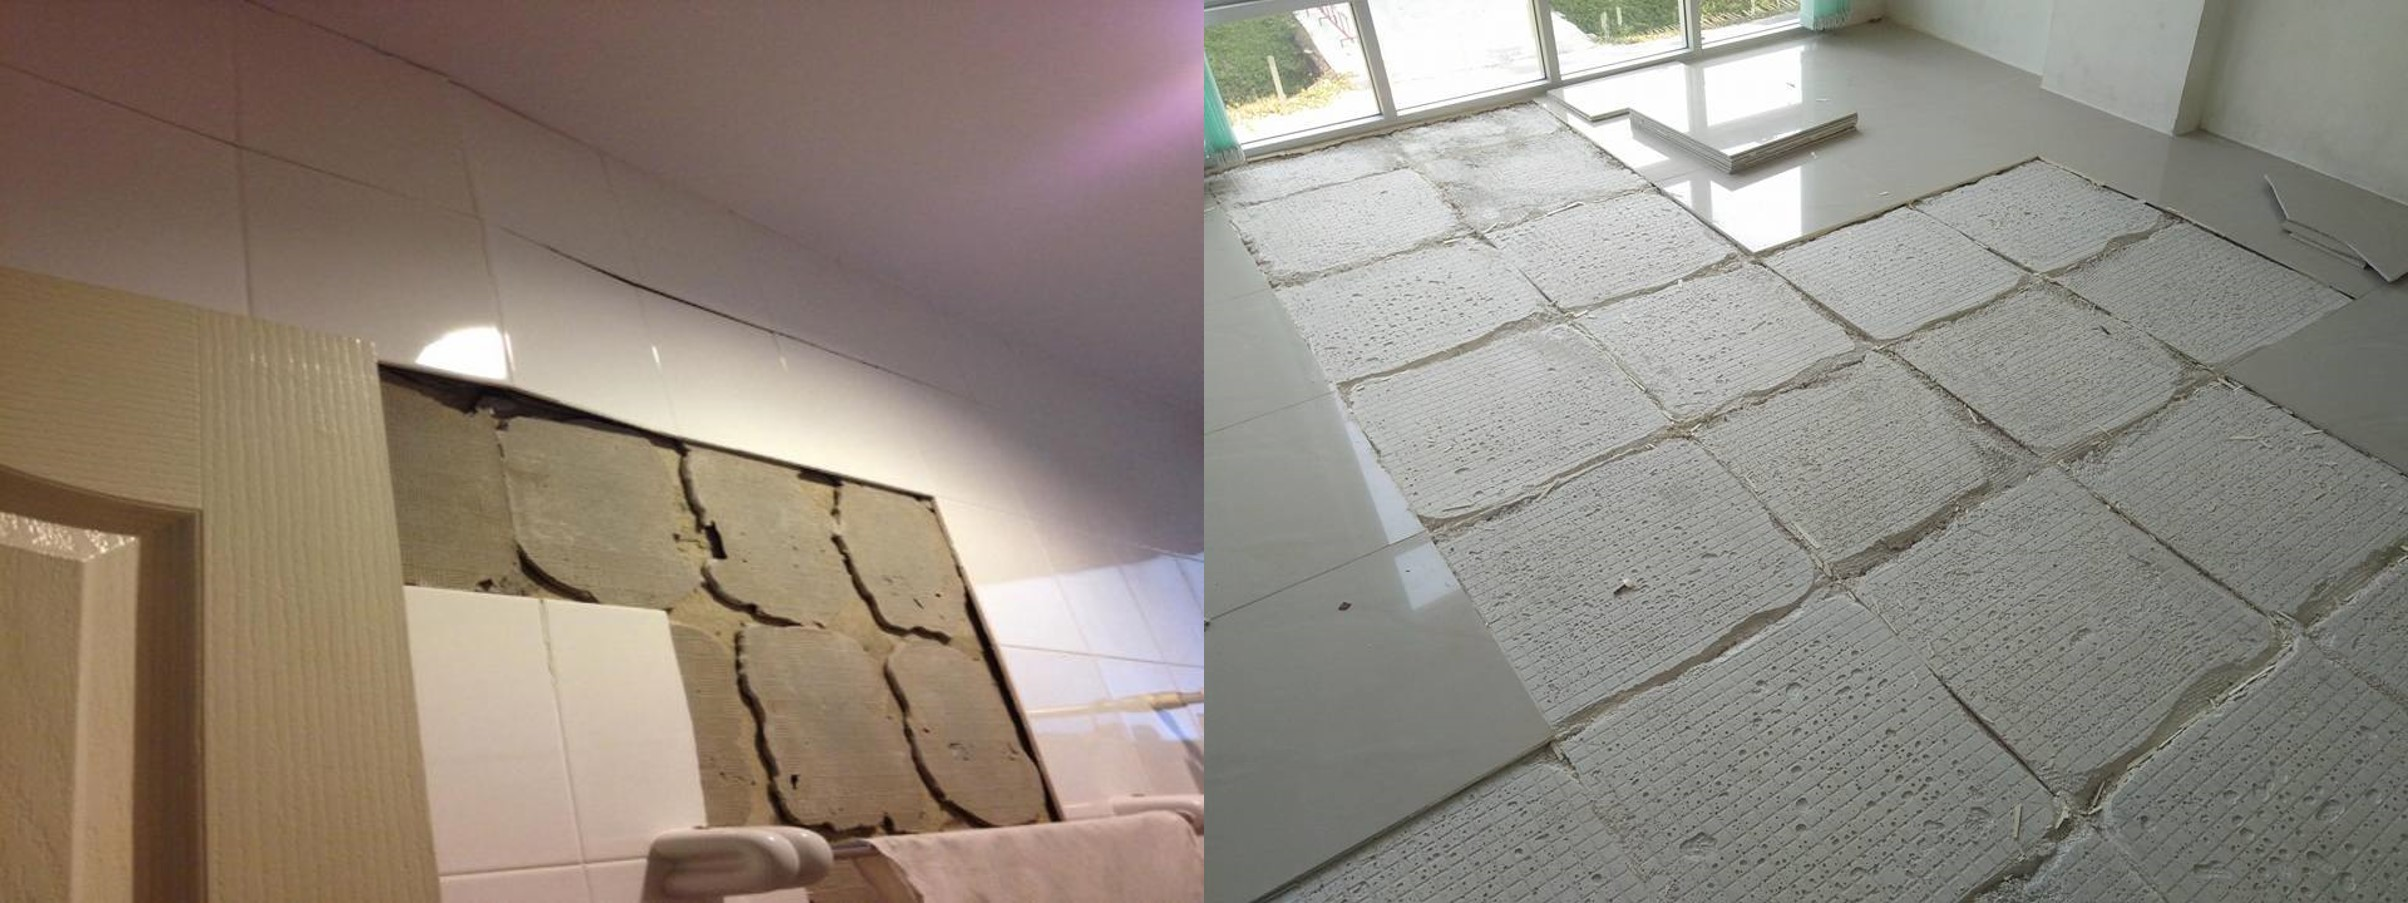 tiling with tile adhesive